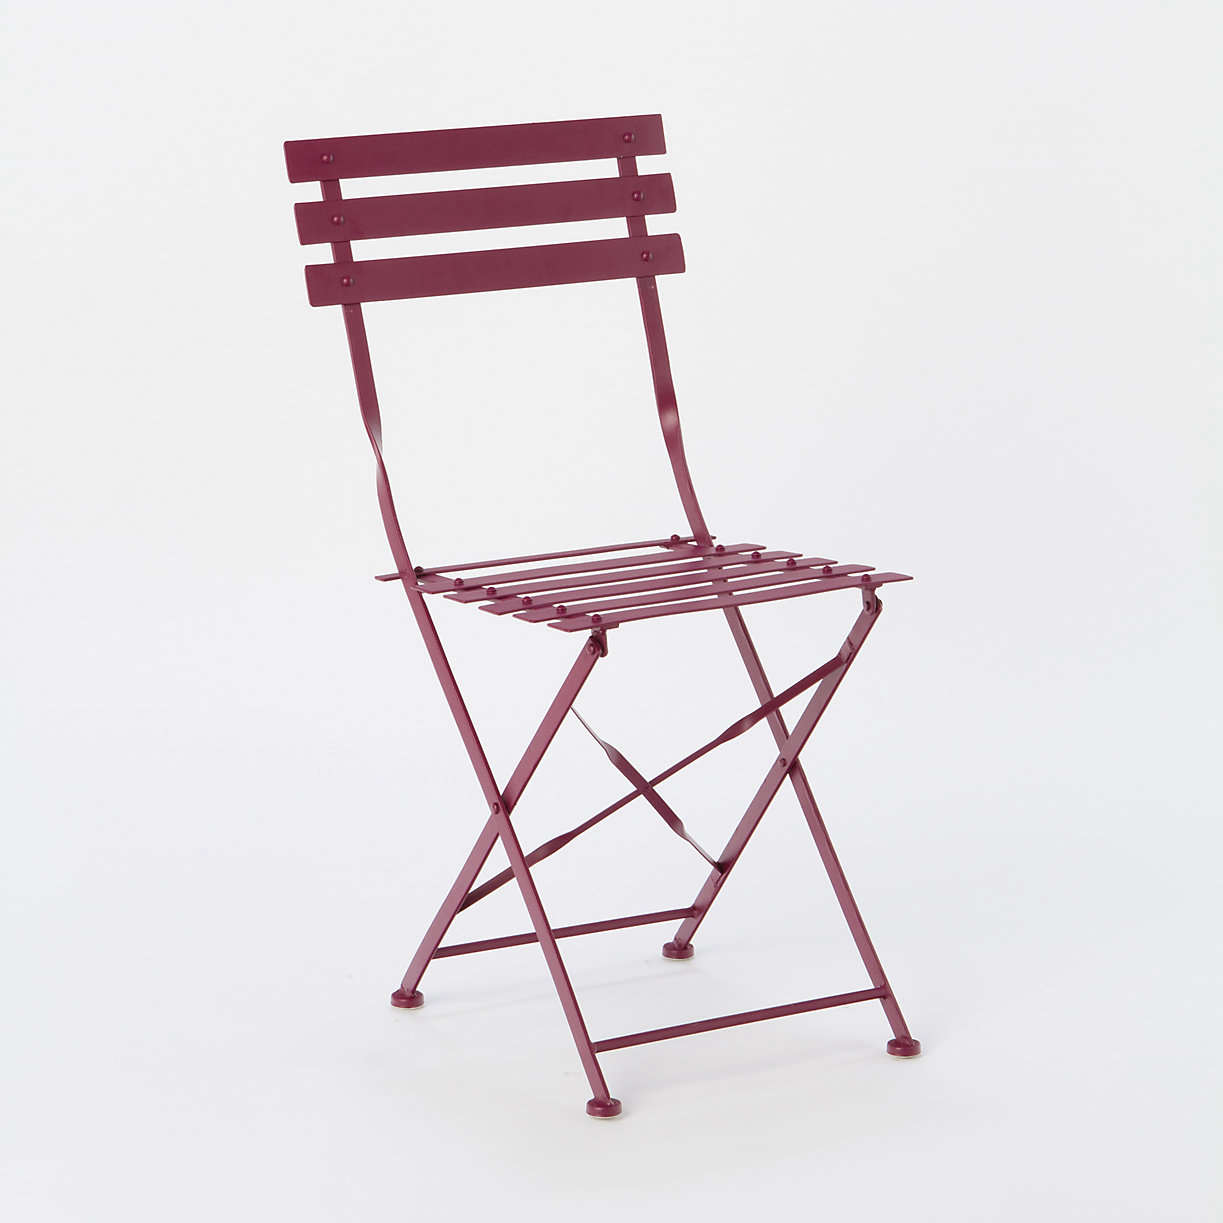 red metal bistro chairs. painted metal bistro chair set red chairs i